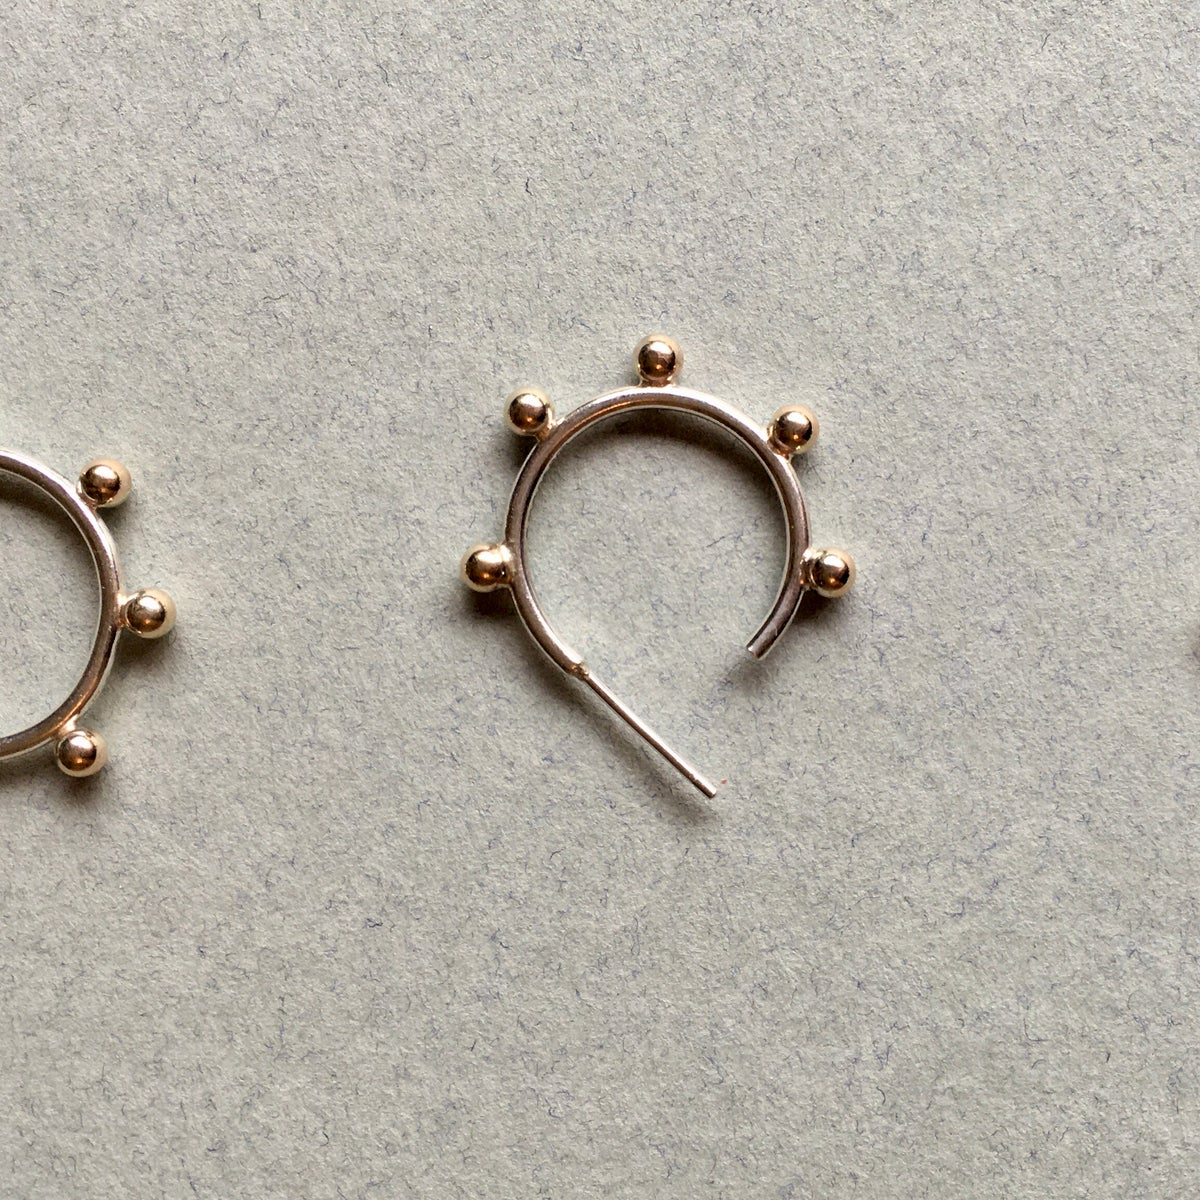 The Frida Hoops in Silver and 9ct gold